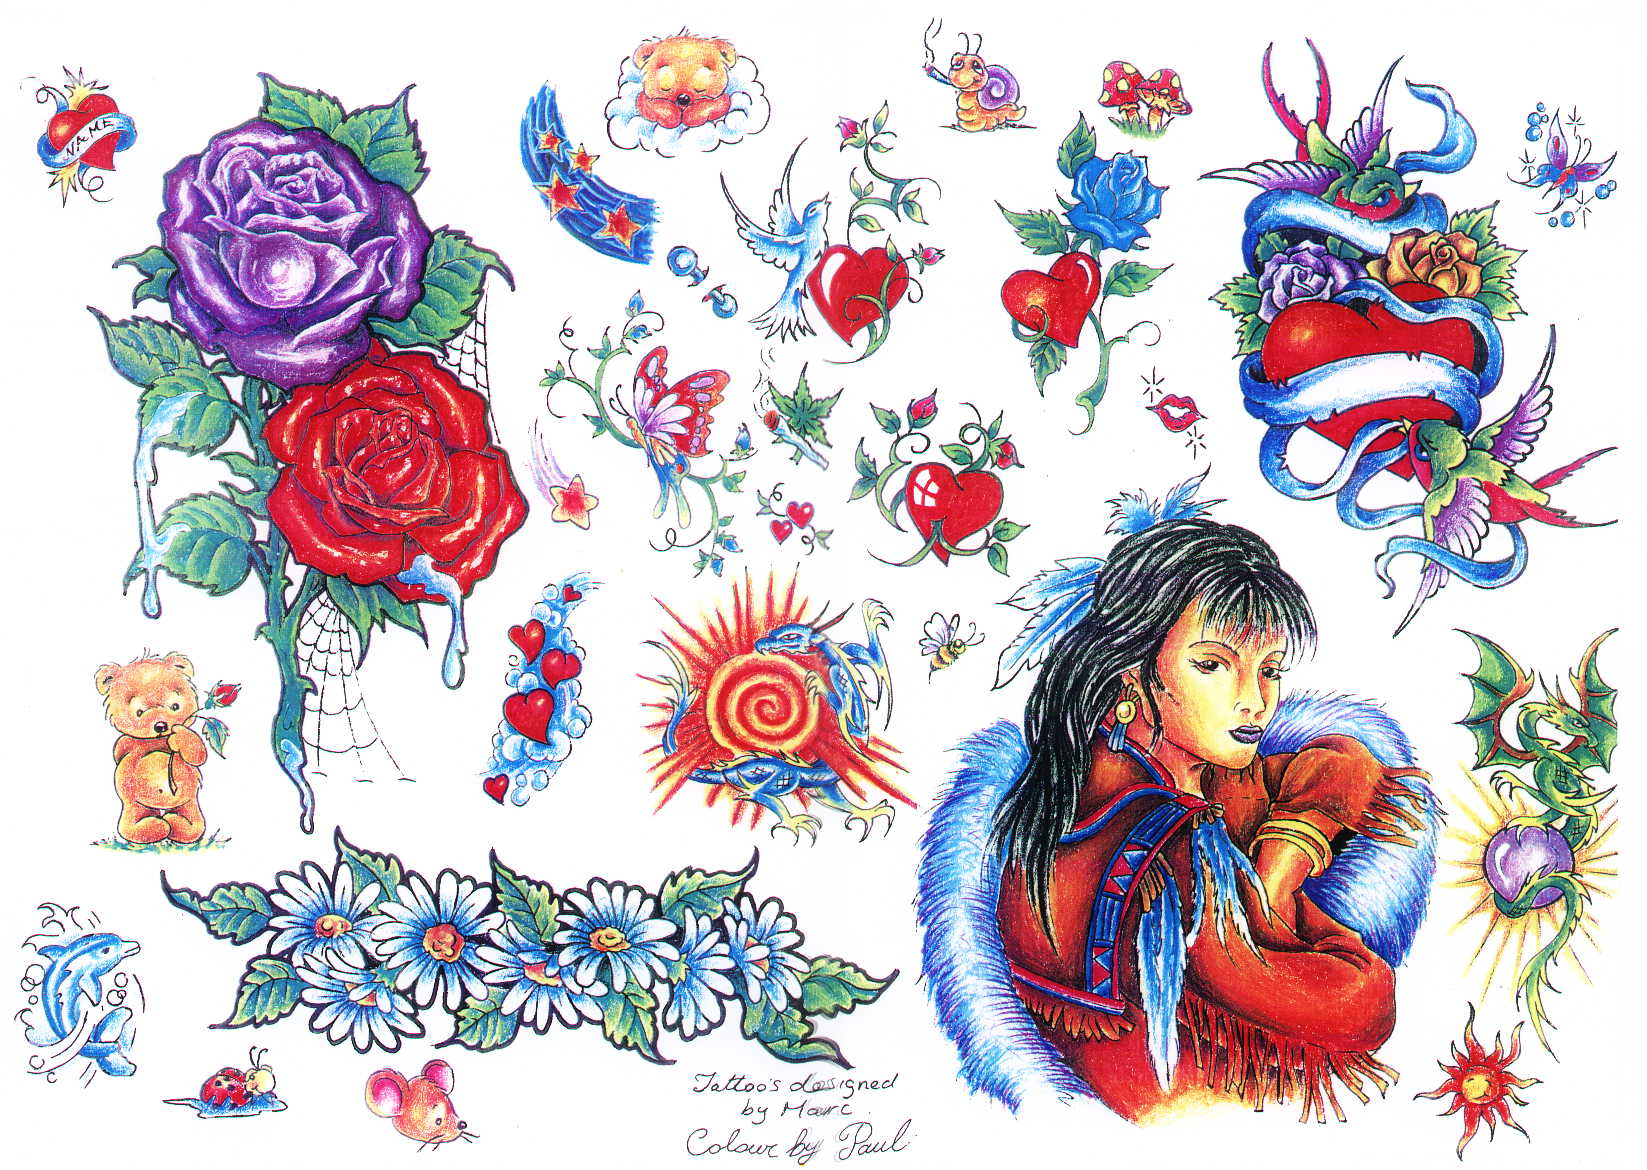 Tattoo designs by Marc.